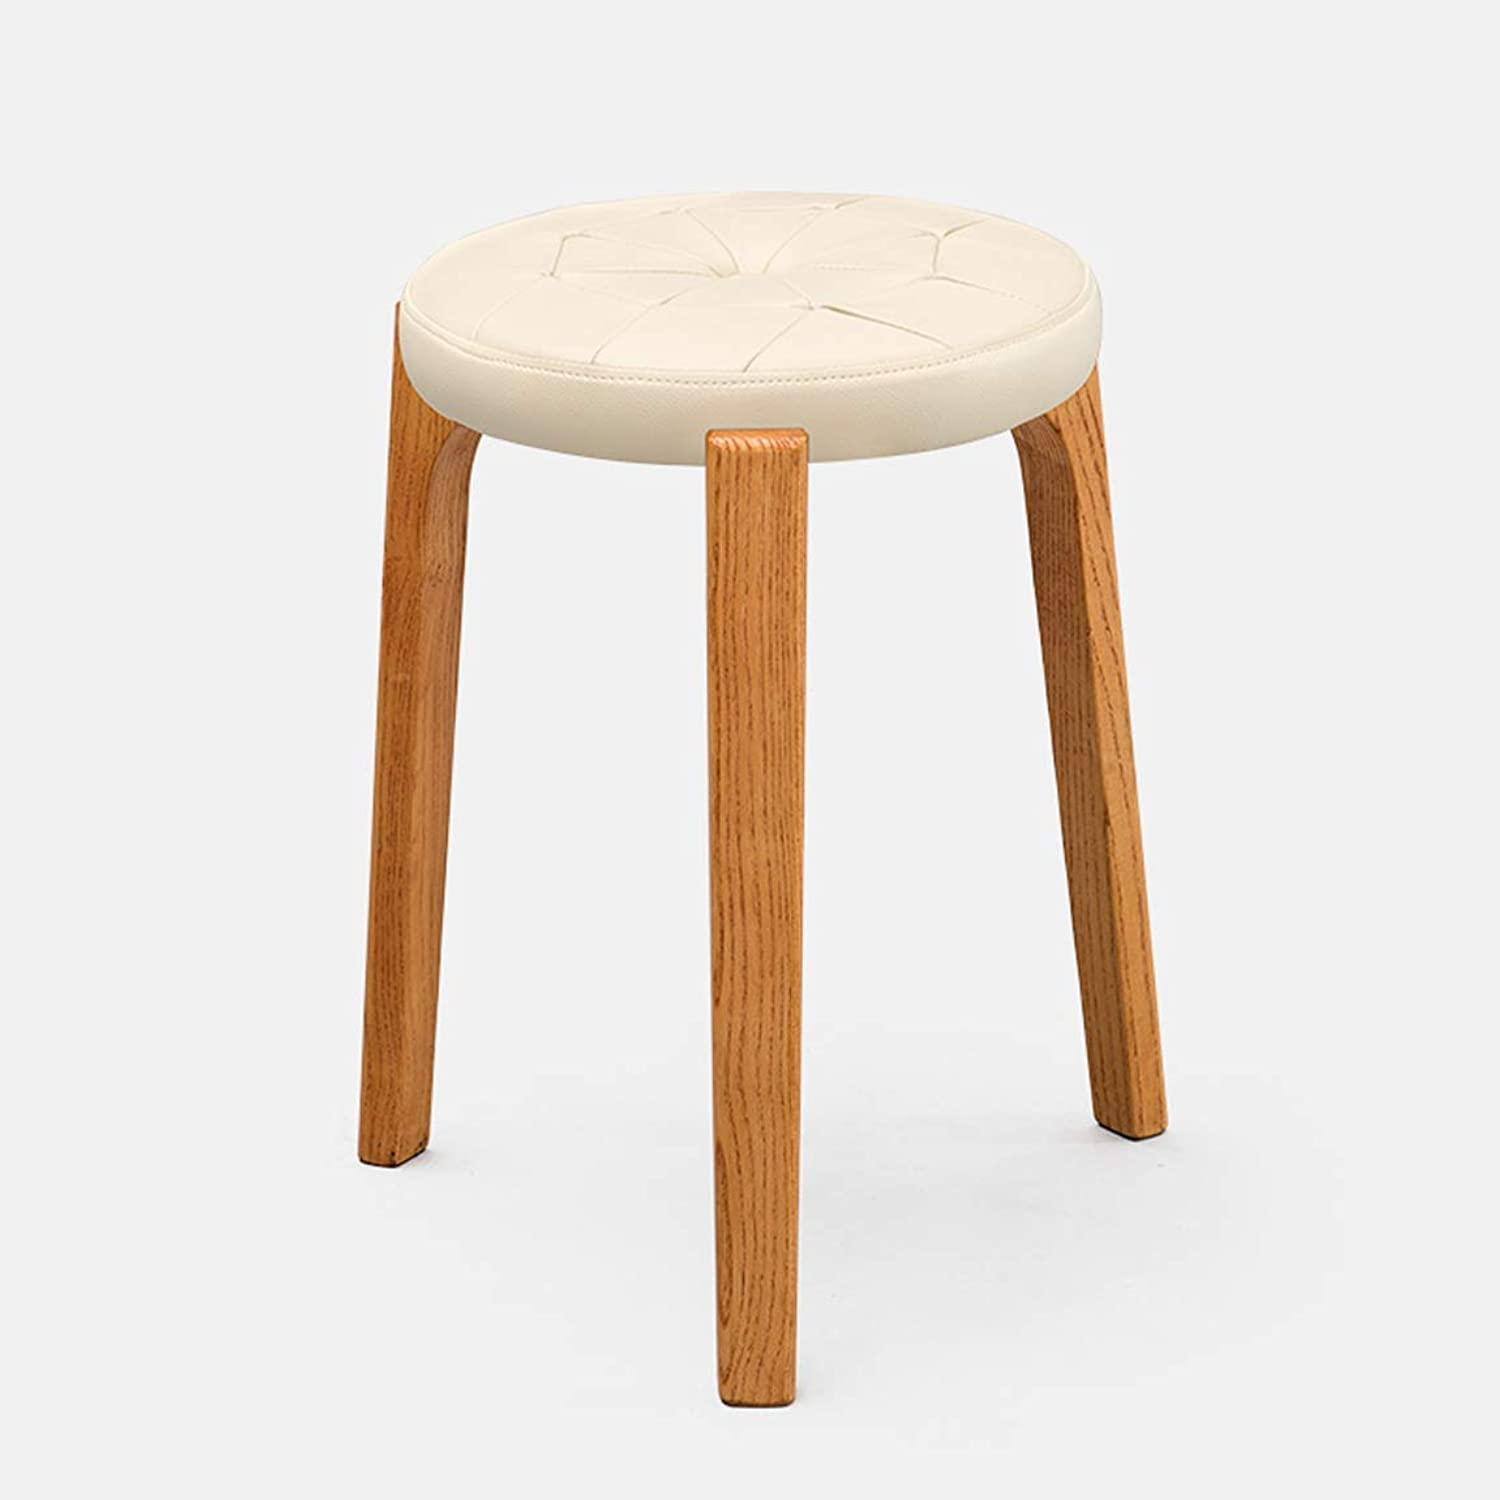 Creative Small Stool Solid Wooden Dining Stool Square Stool Dressing Stool Simple Fashionable Dressing Stool Bench Household Stool 11 Carl Artbay Strong and Practical